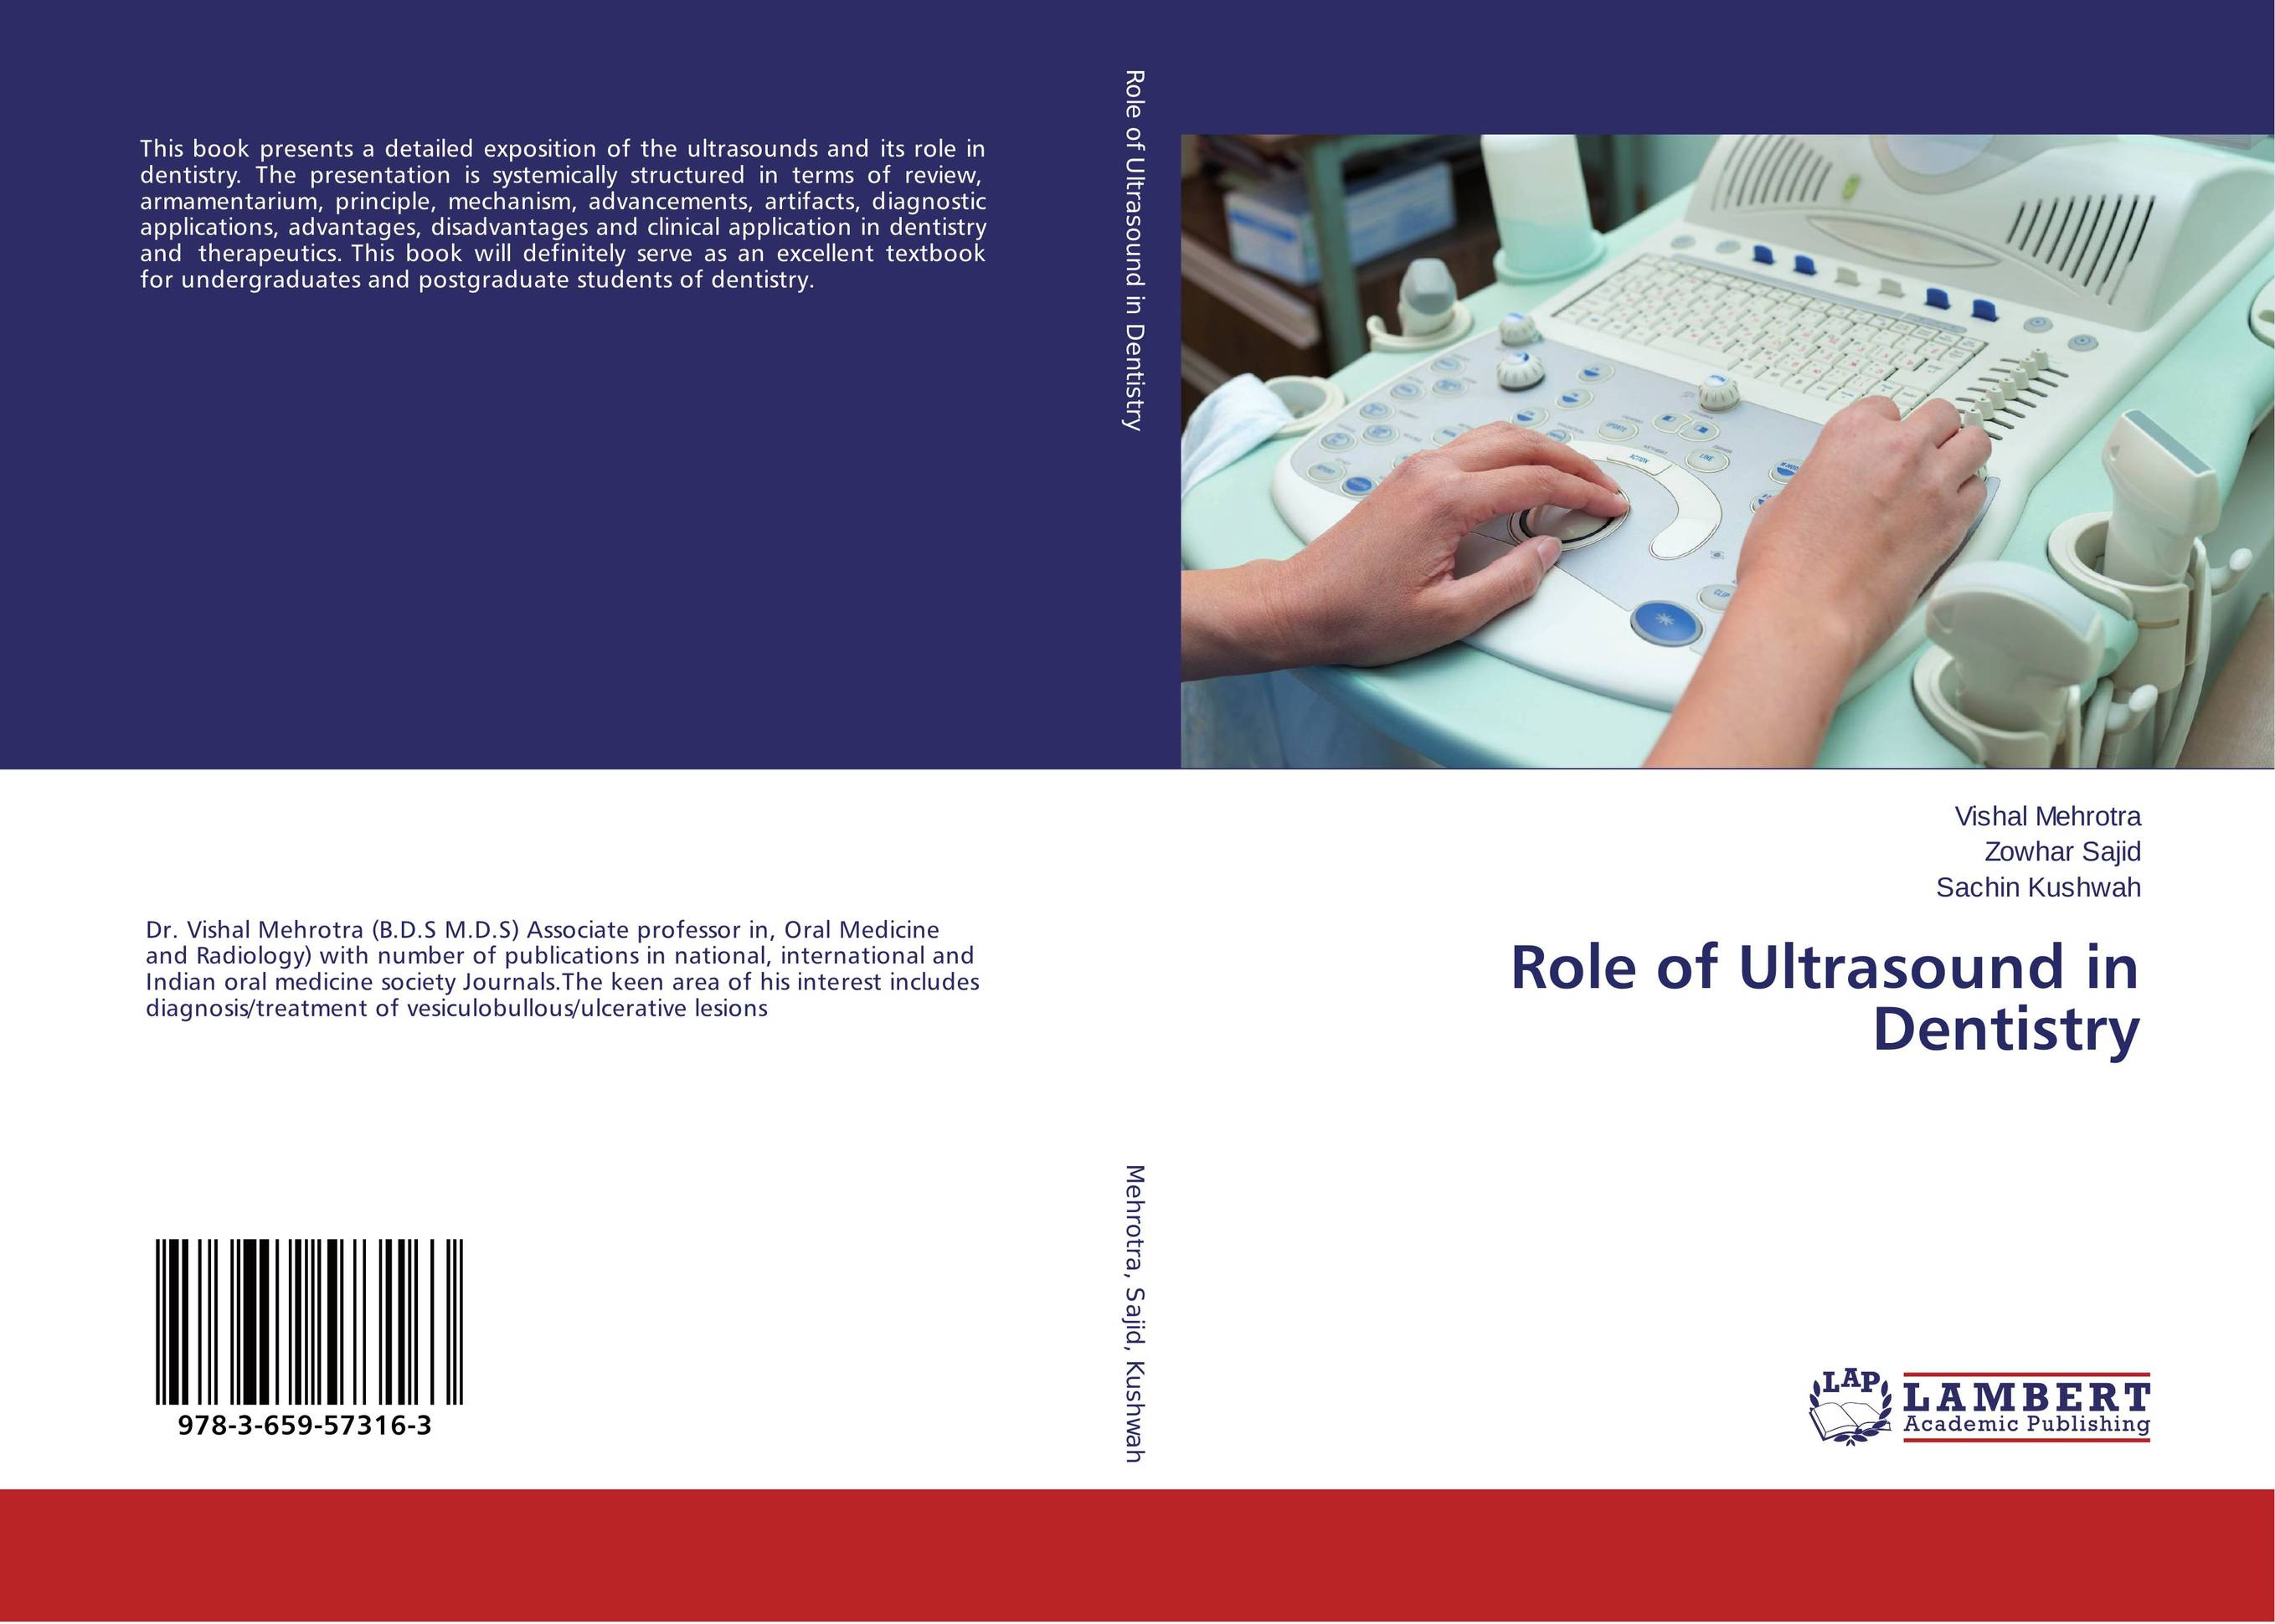 Role of Ultrasound in Dentistry the role of evaluation as a mechanism for advancing principal practice